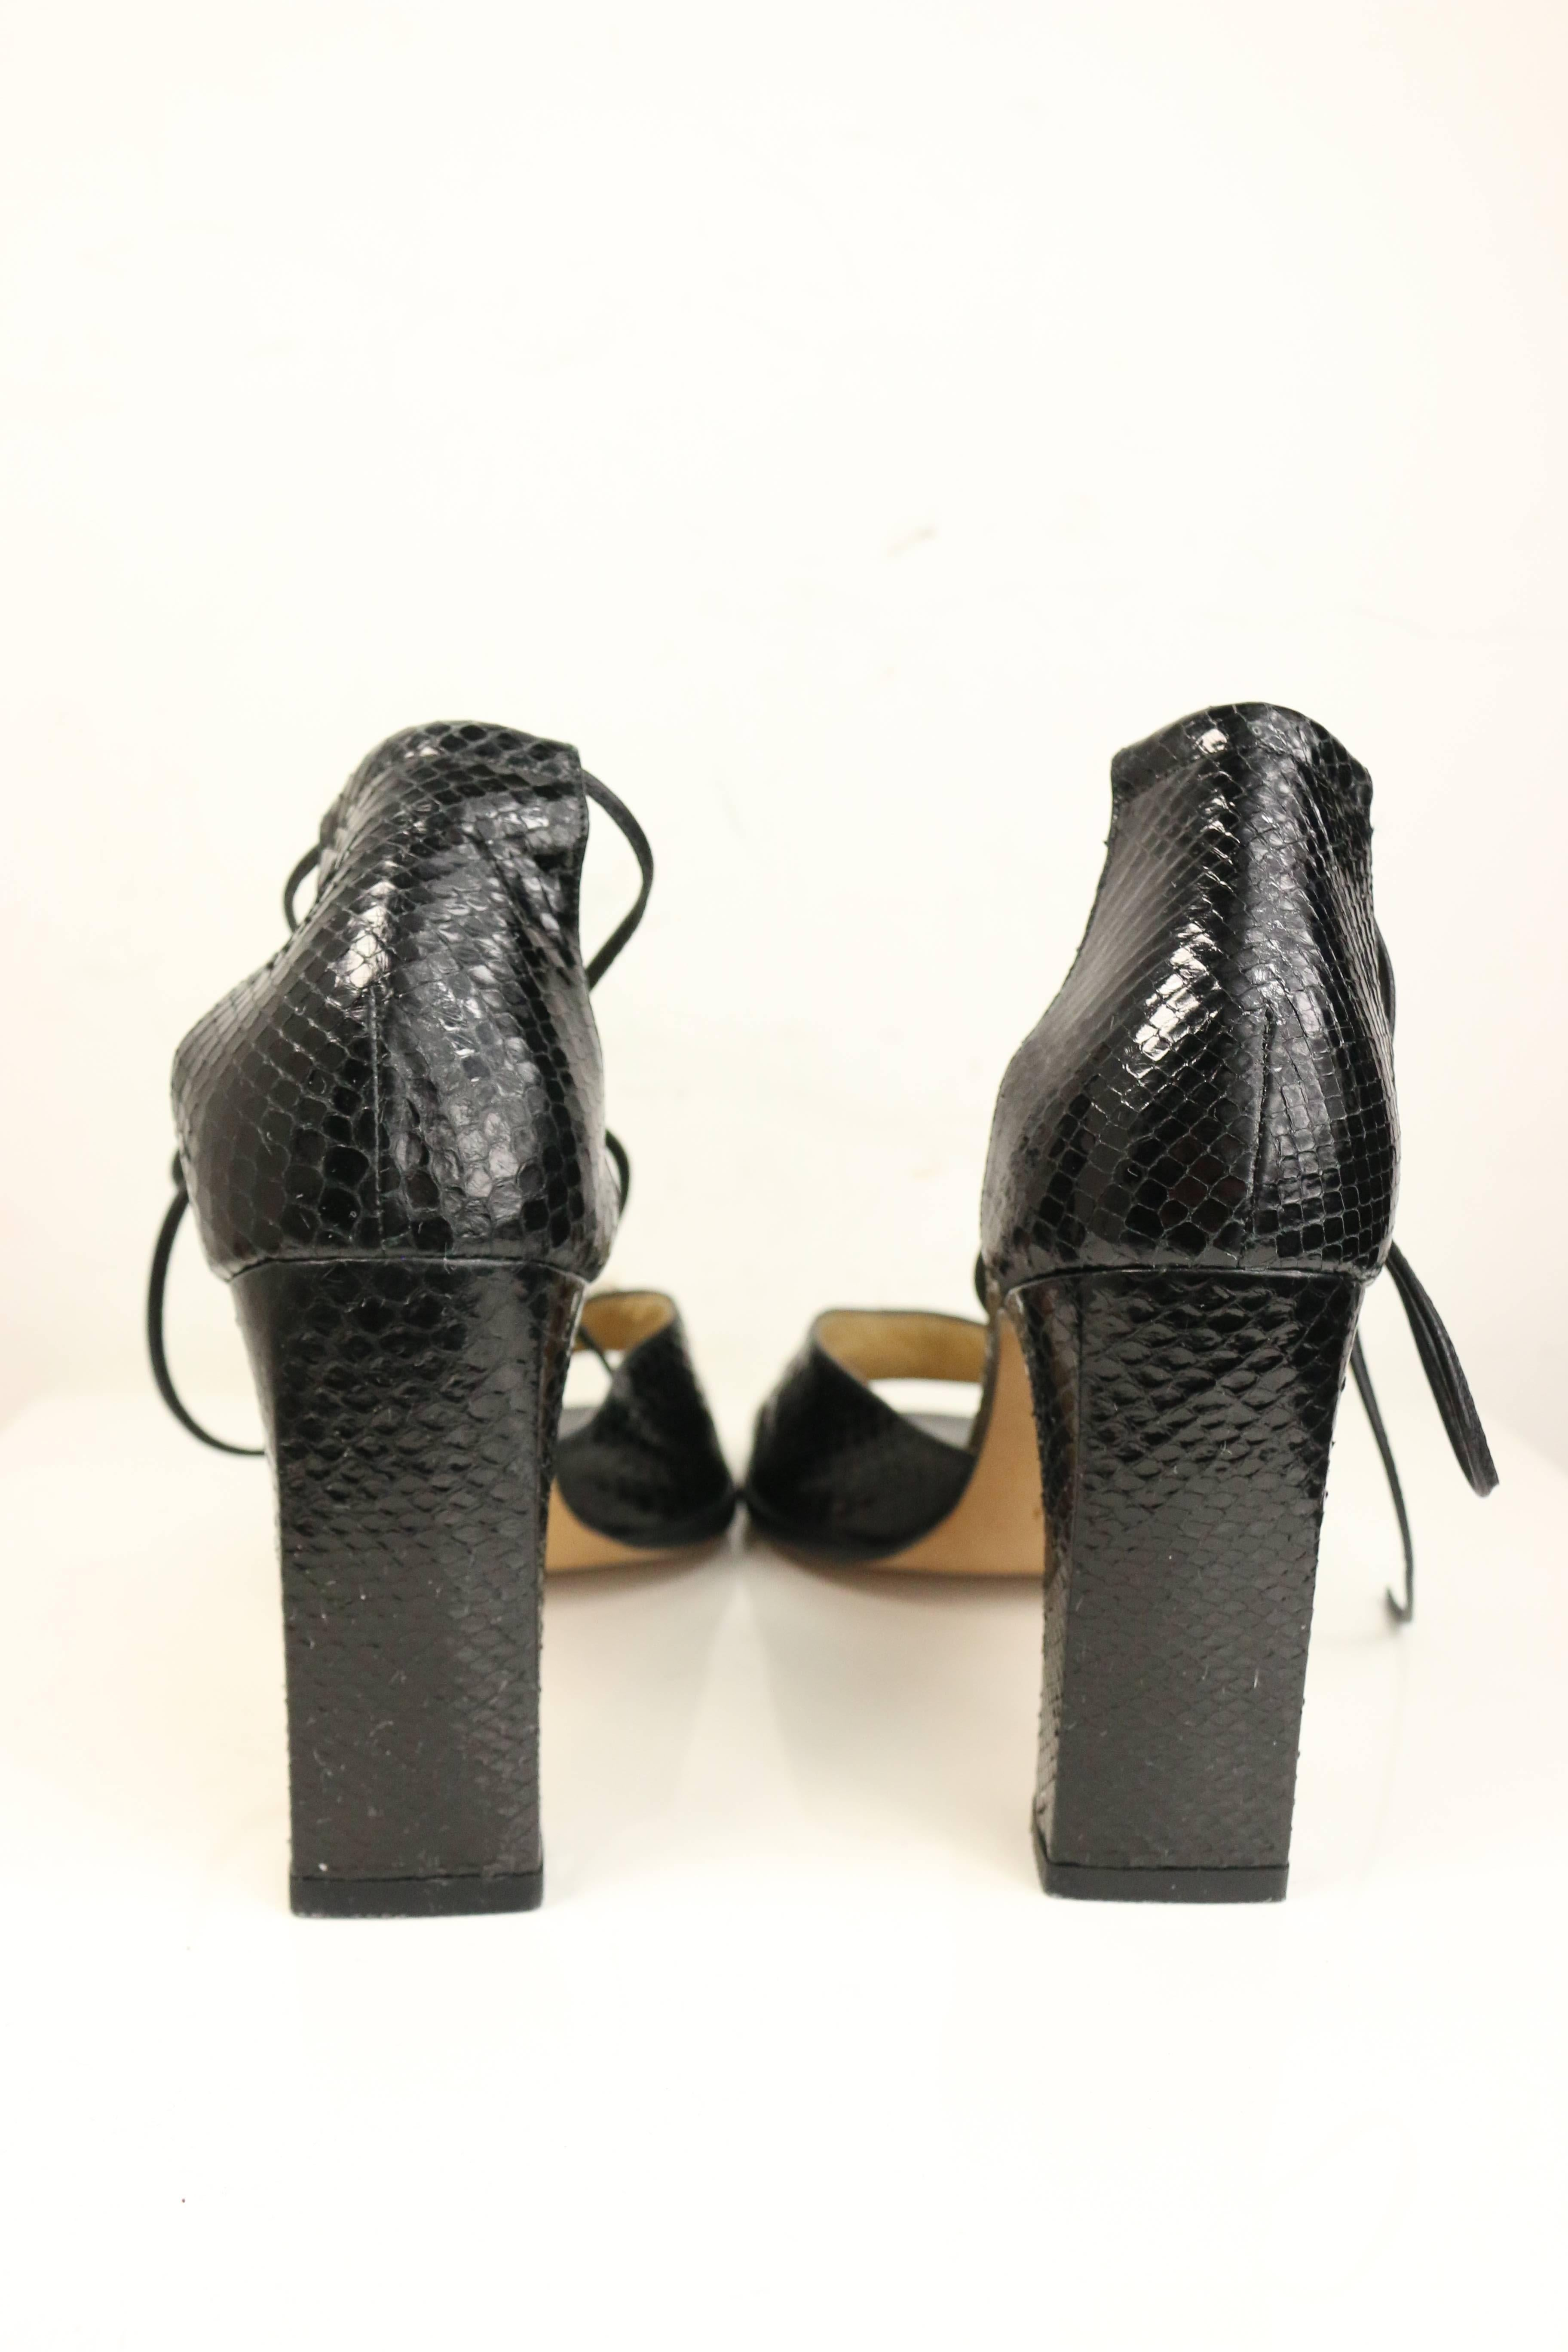 women os fes strappy dsk hero modesens tom with feather heels shop black for sandal trim rgb a blb coverbg pdp shoes ford